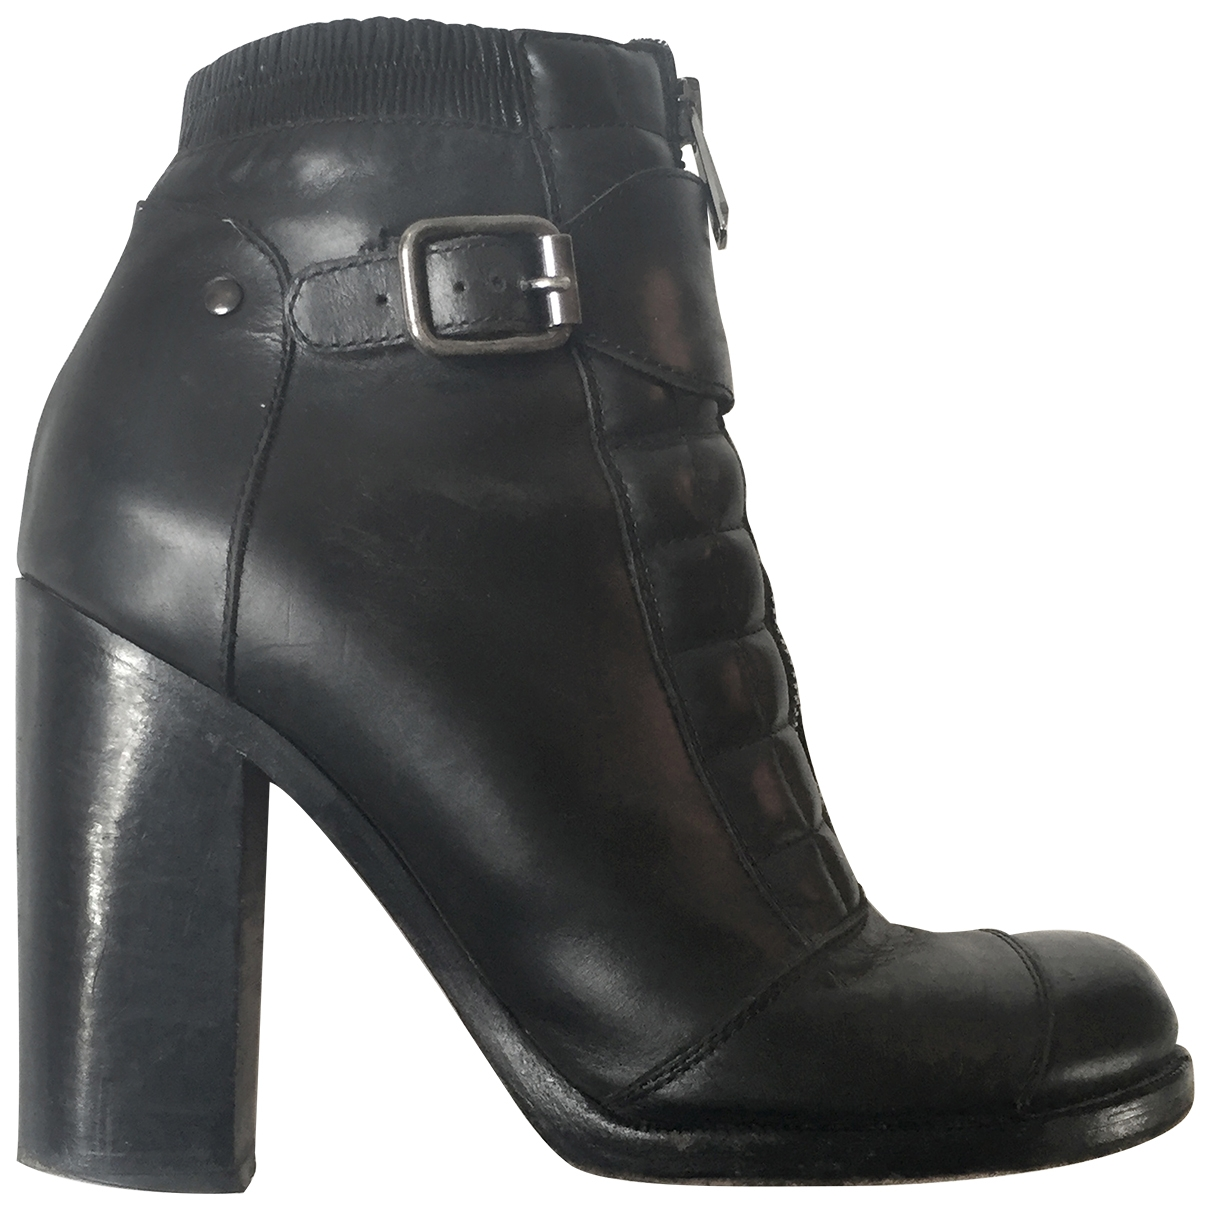 Vanessa Bruno \N Black Leather Ankle boots for Women 39 EU